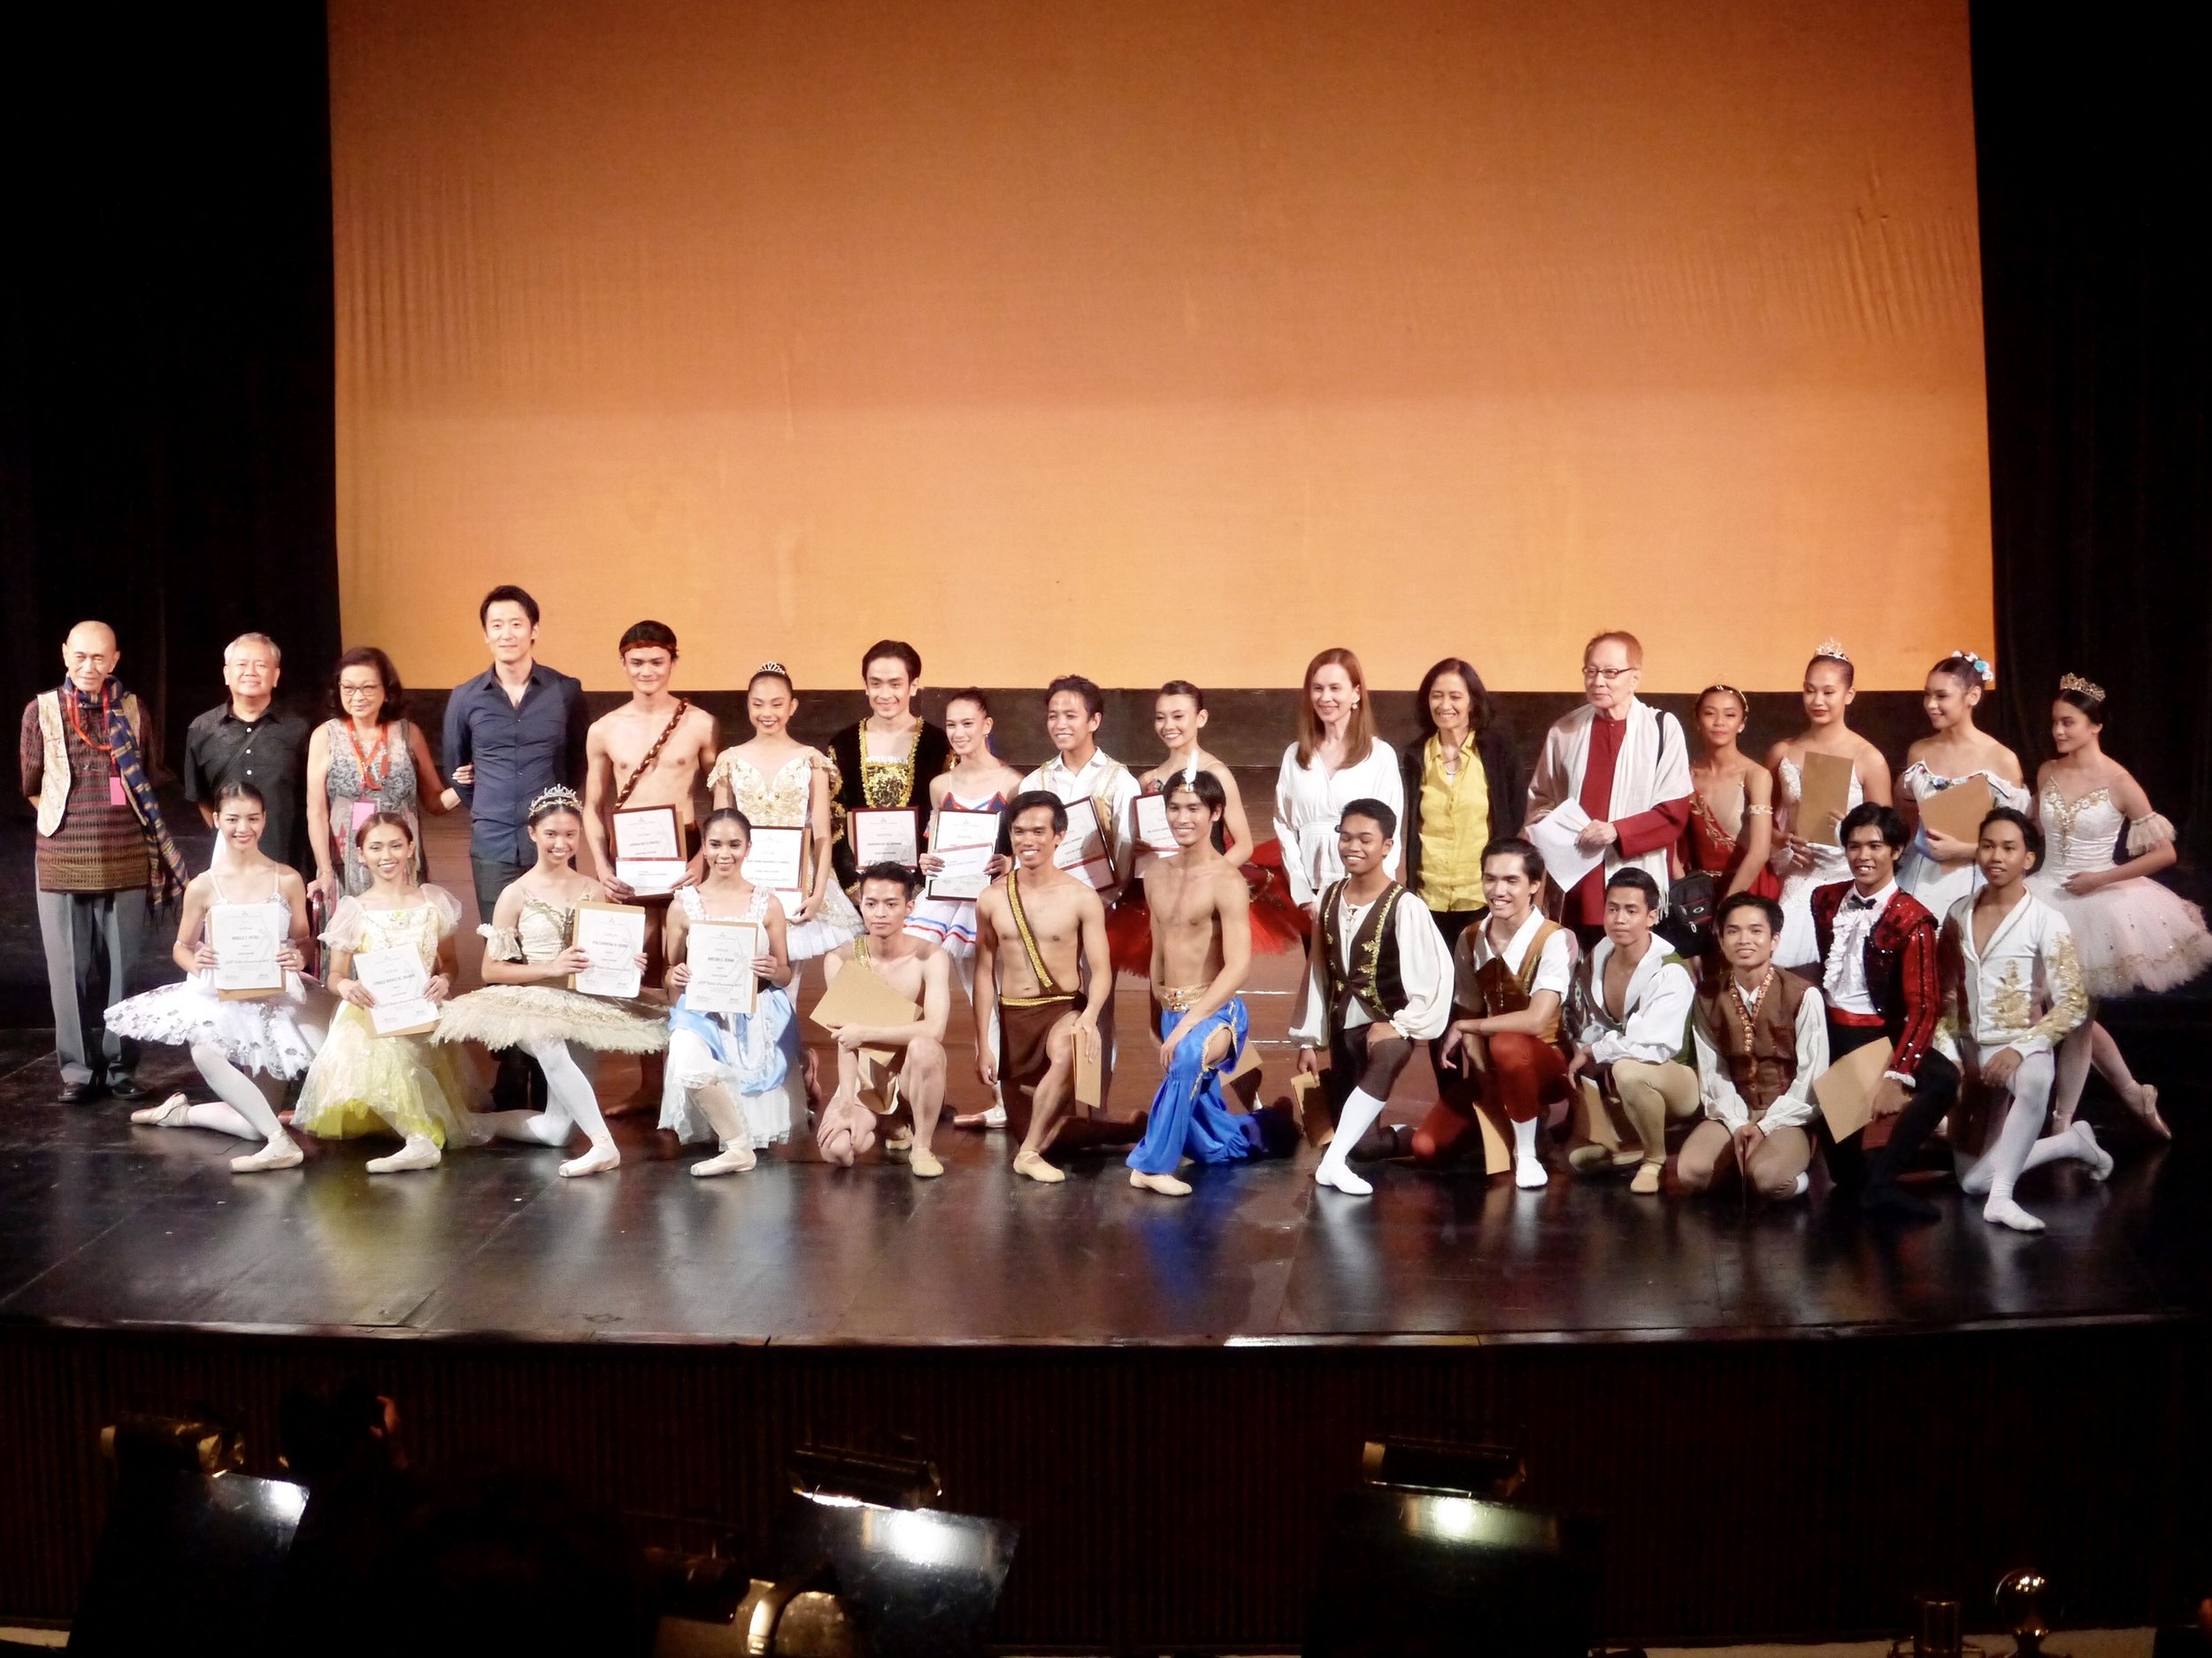 The jurors of CCP Ballet Competition 2018 join the senior competitors for a picture after the awarding ceremony.